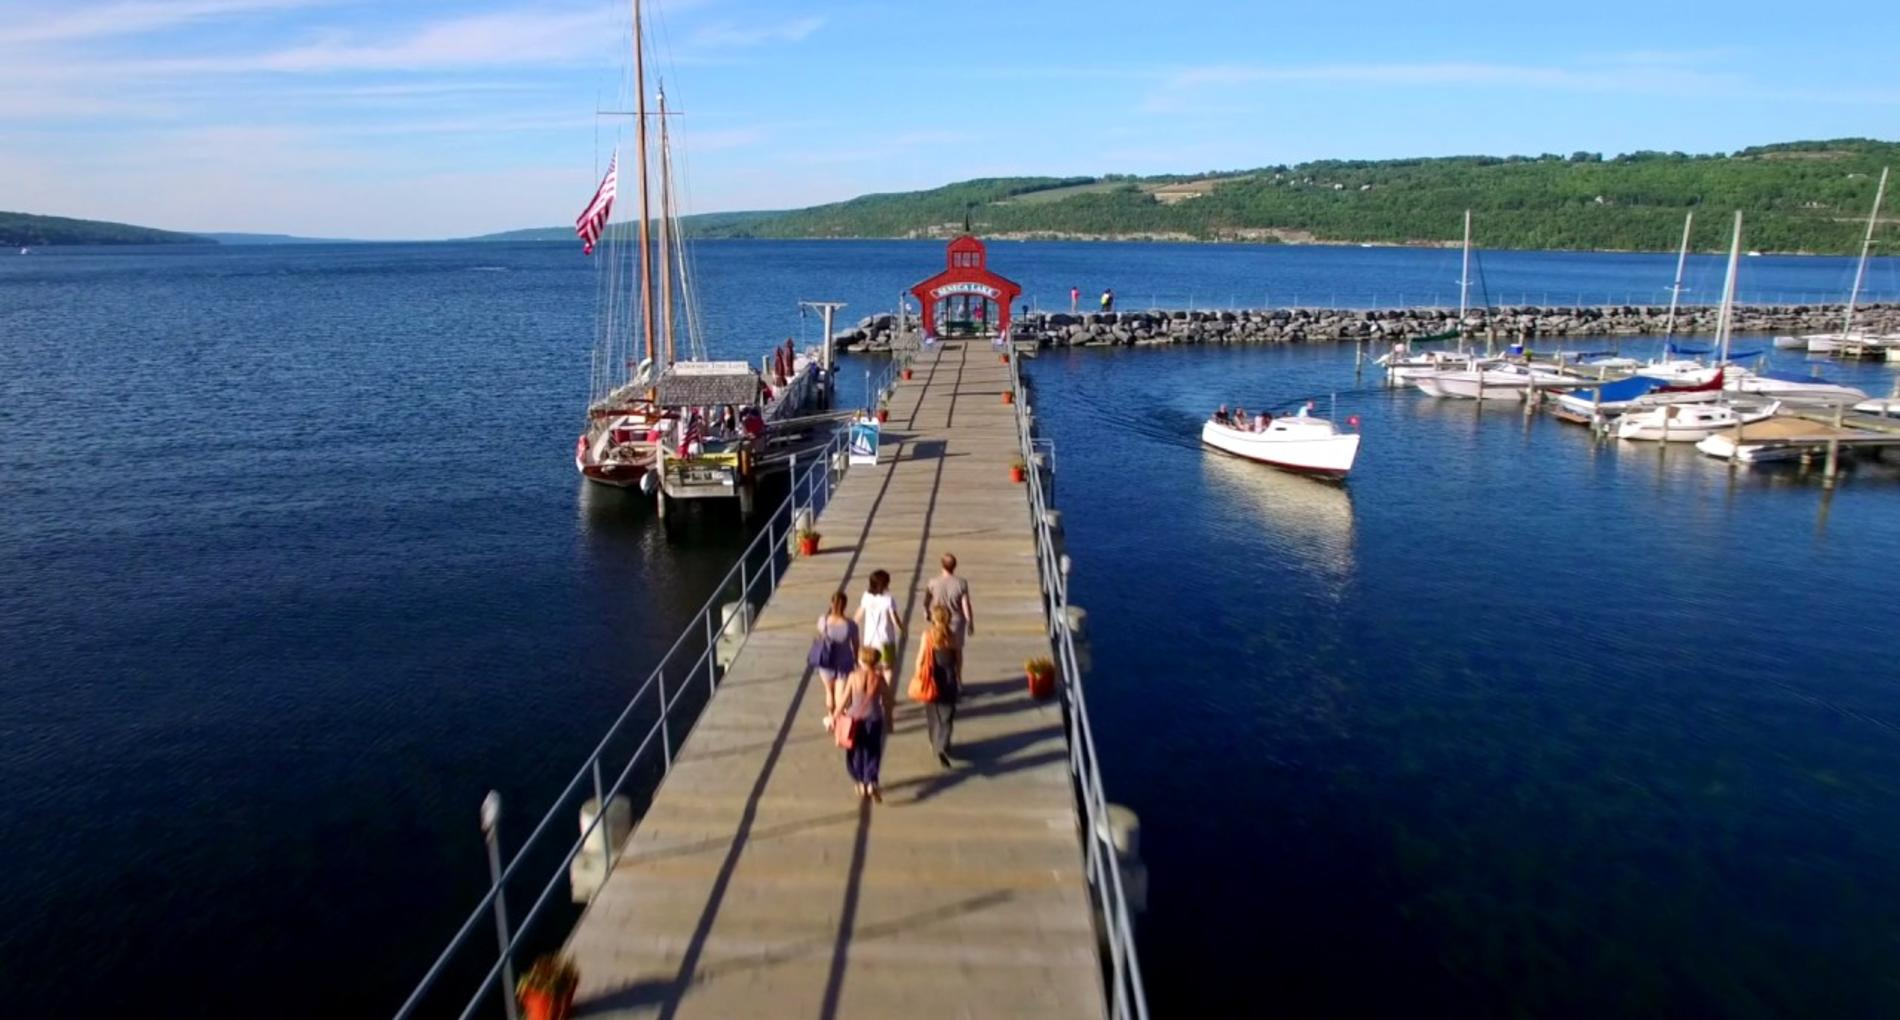 Official Travel And Tourism Information For Finger Lakes